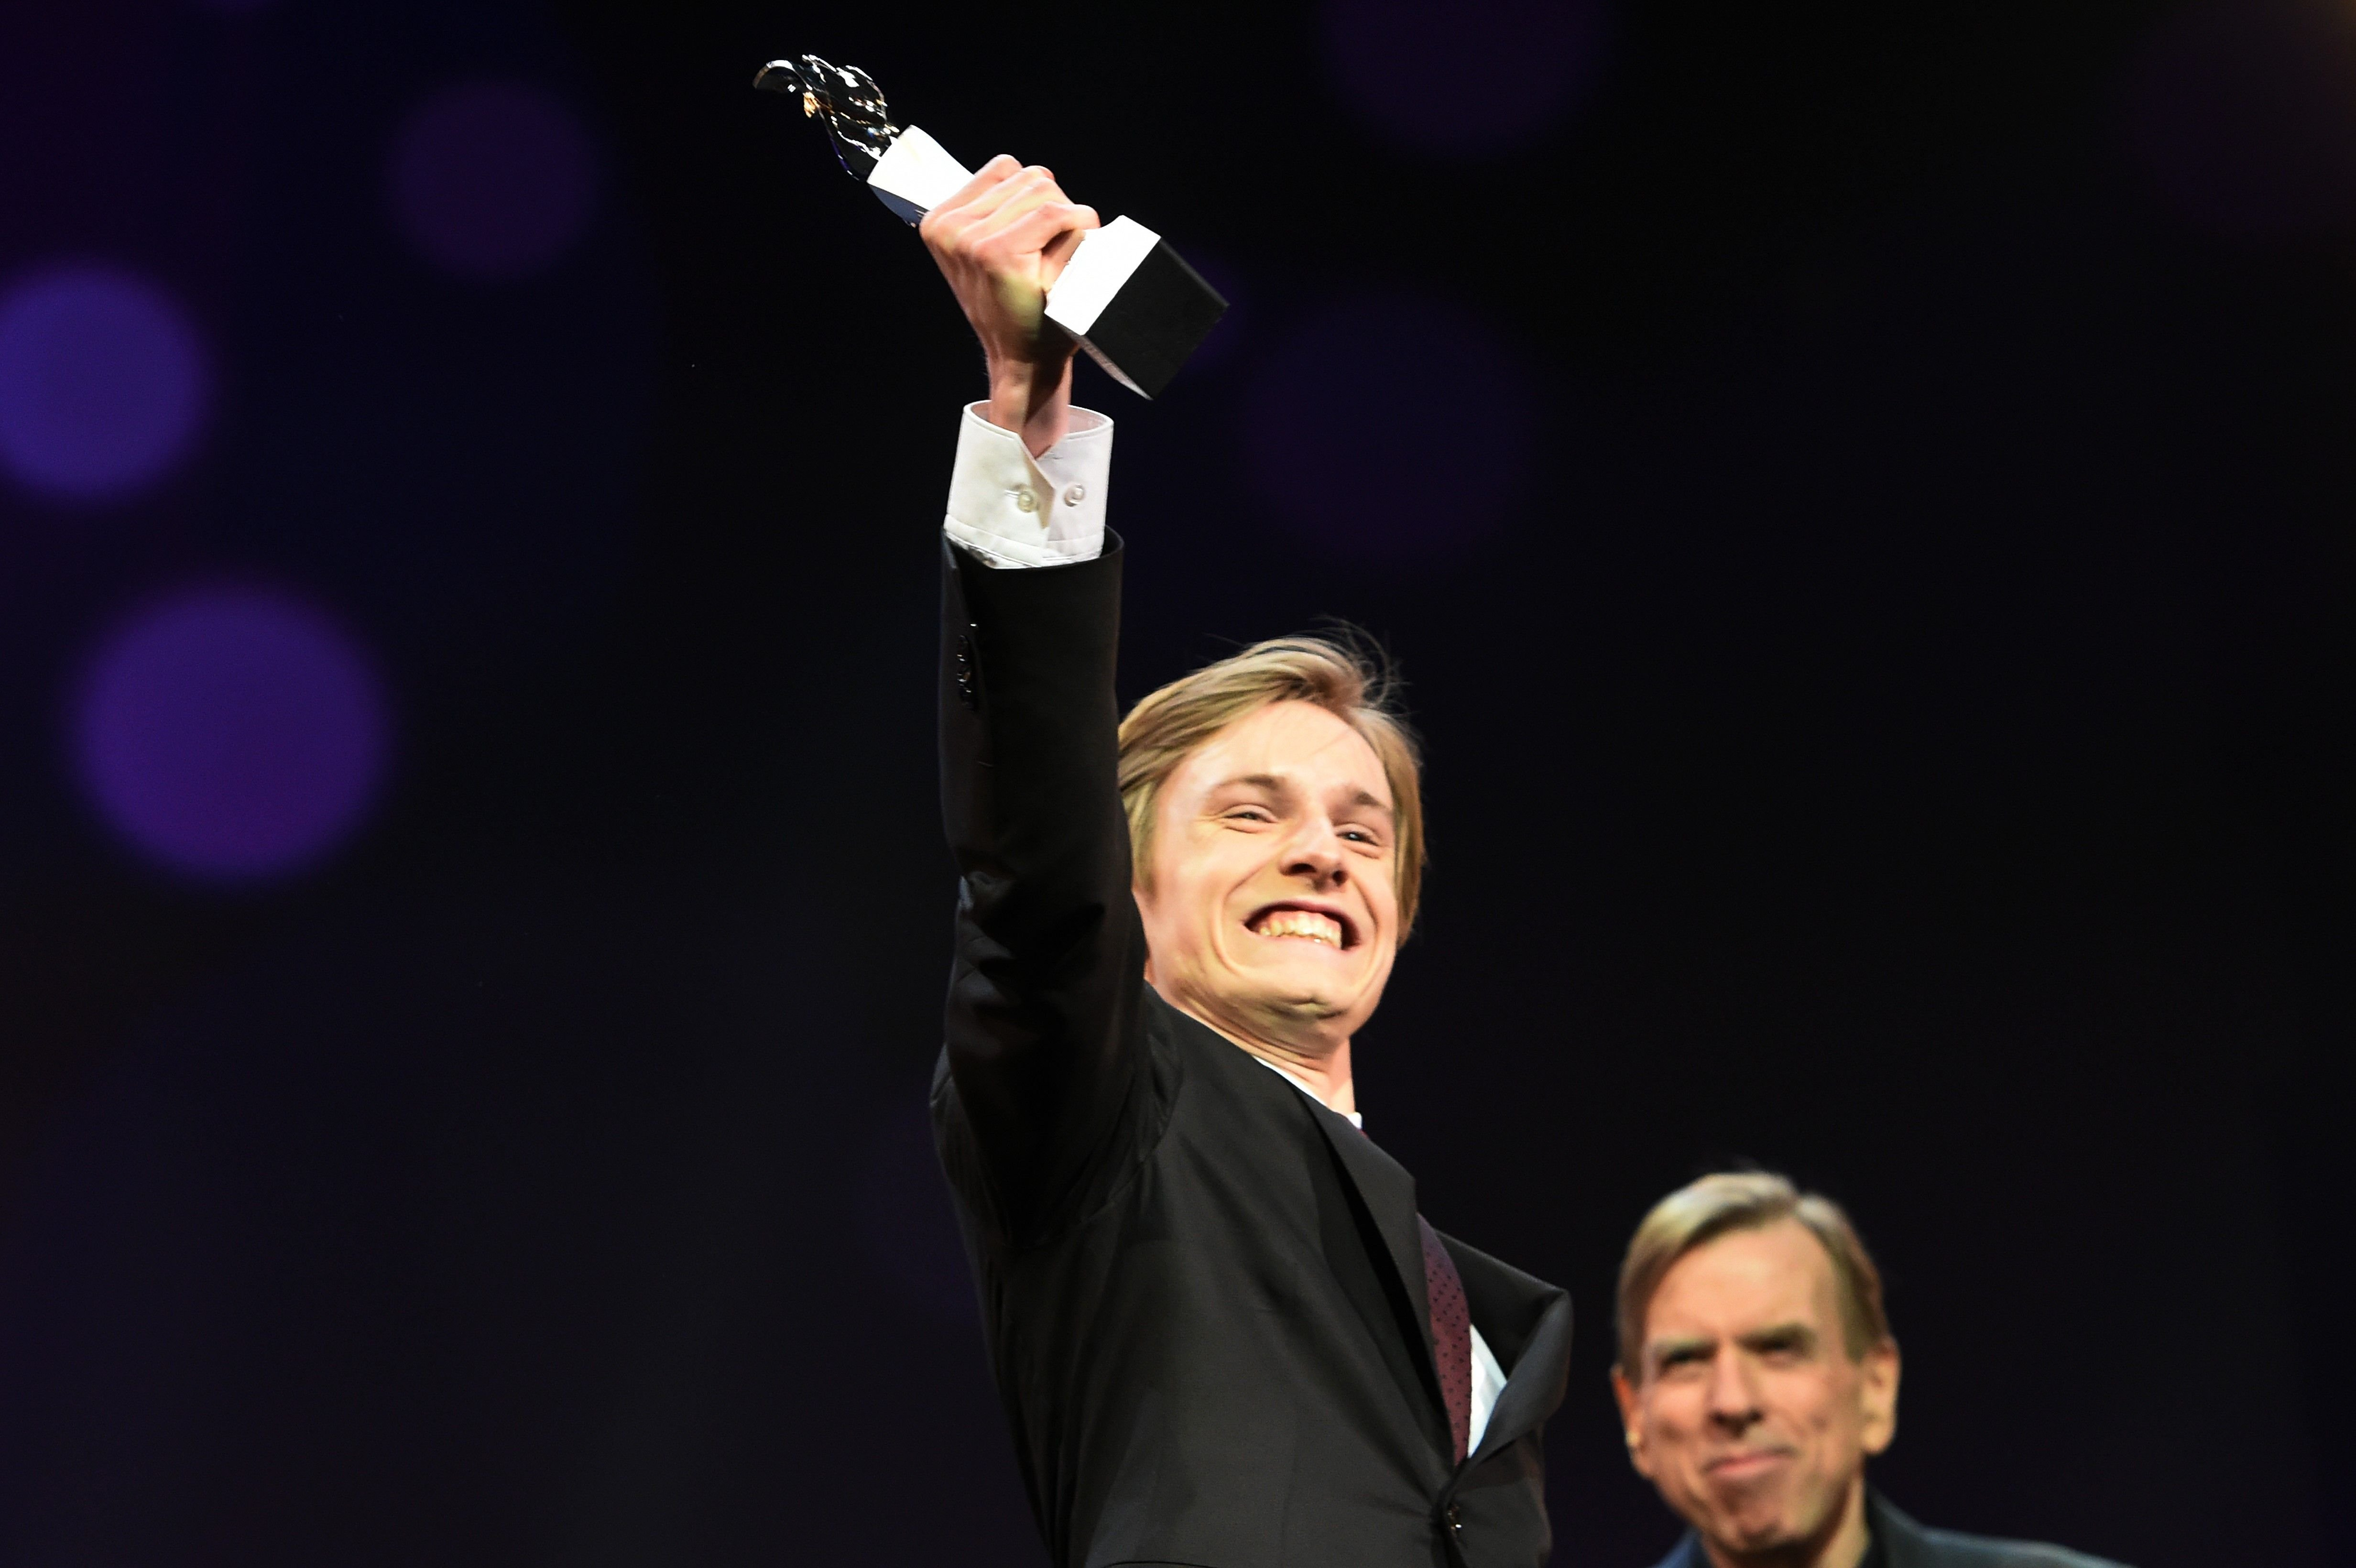 Louis Hofmann receives the award at the 'The Party' premiere during the 67th Berlinale International Film Festival / Photo: Getty Images